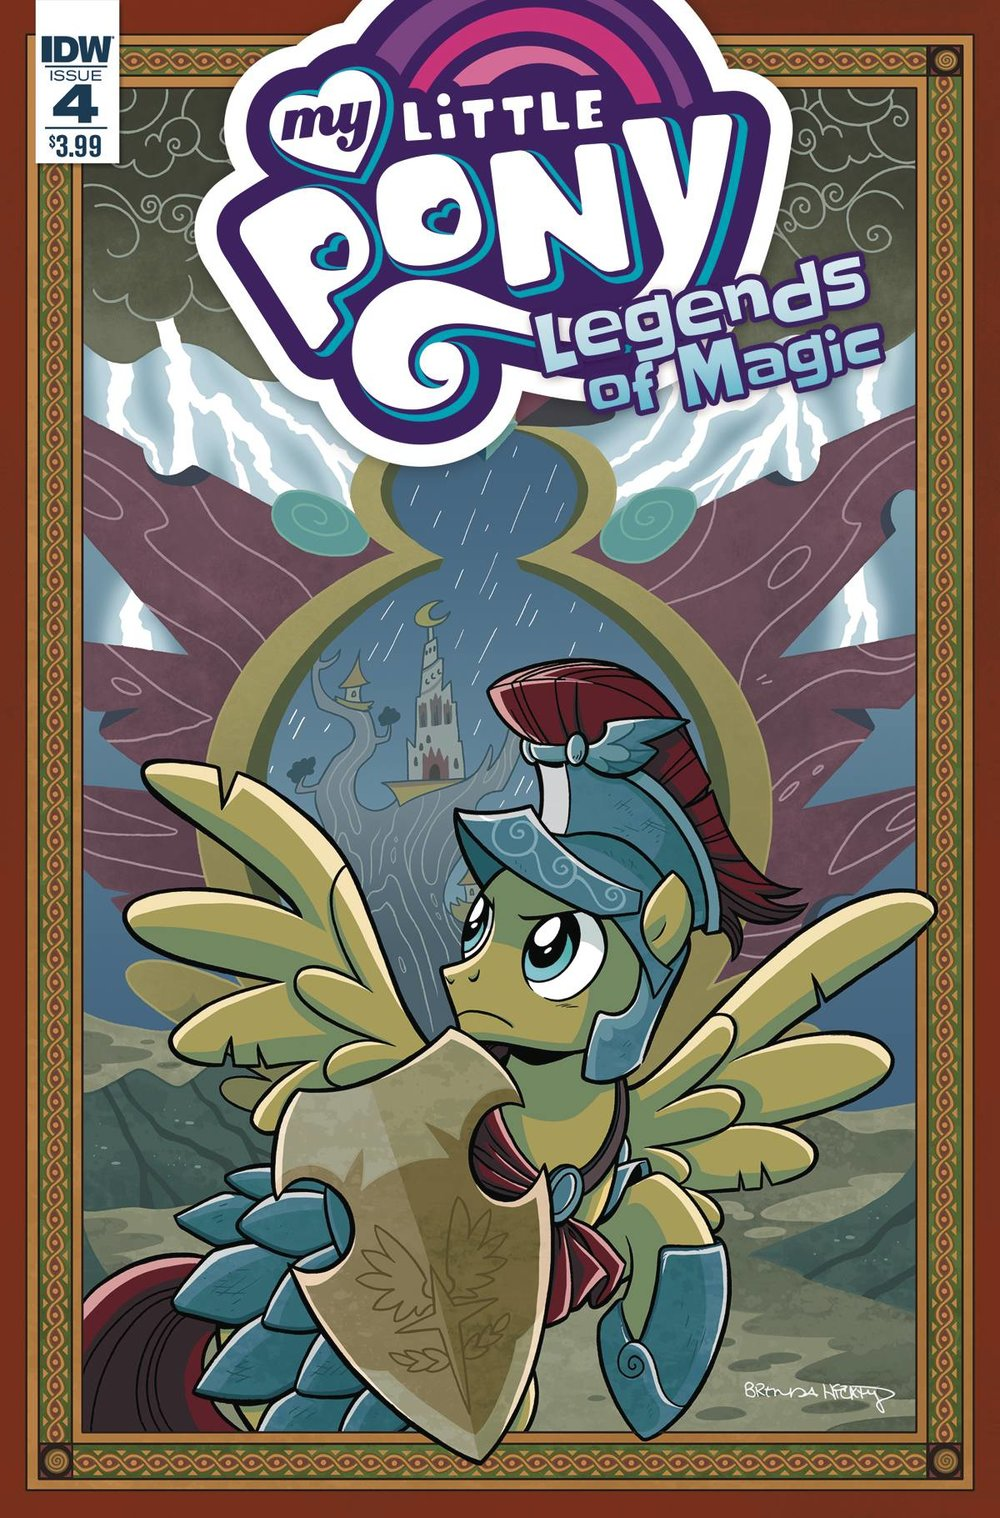 MY LITTLE PONY LEGENDS OF MAGIC 4 CVR A HICKEY.jpg